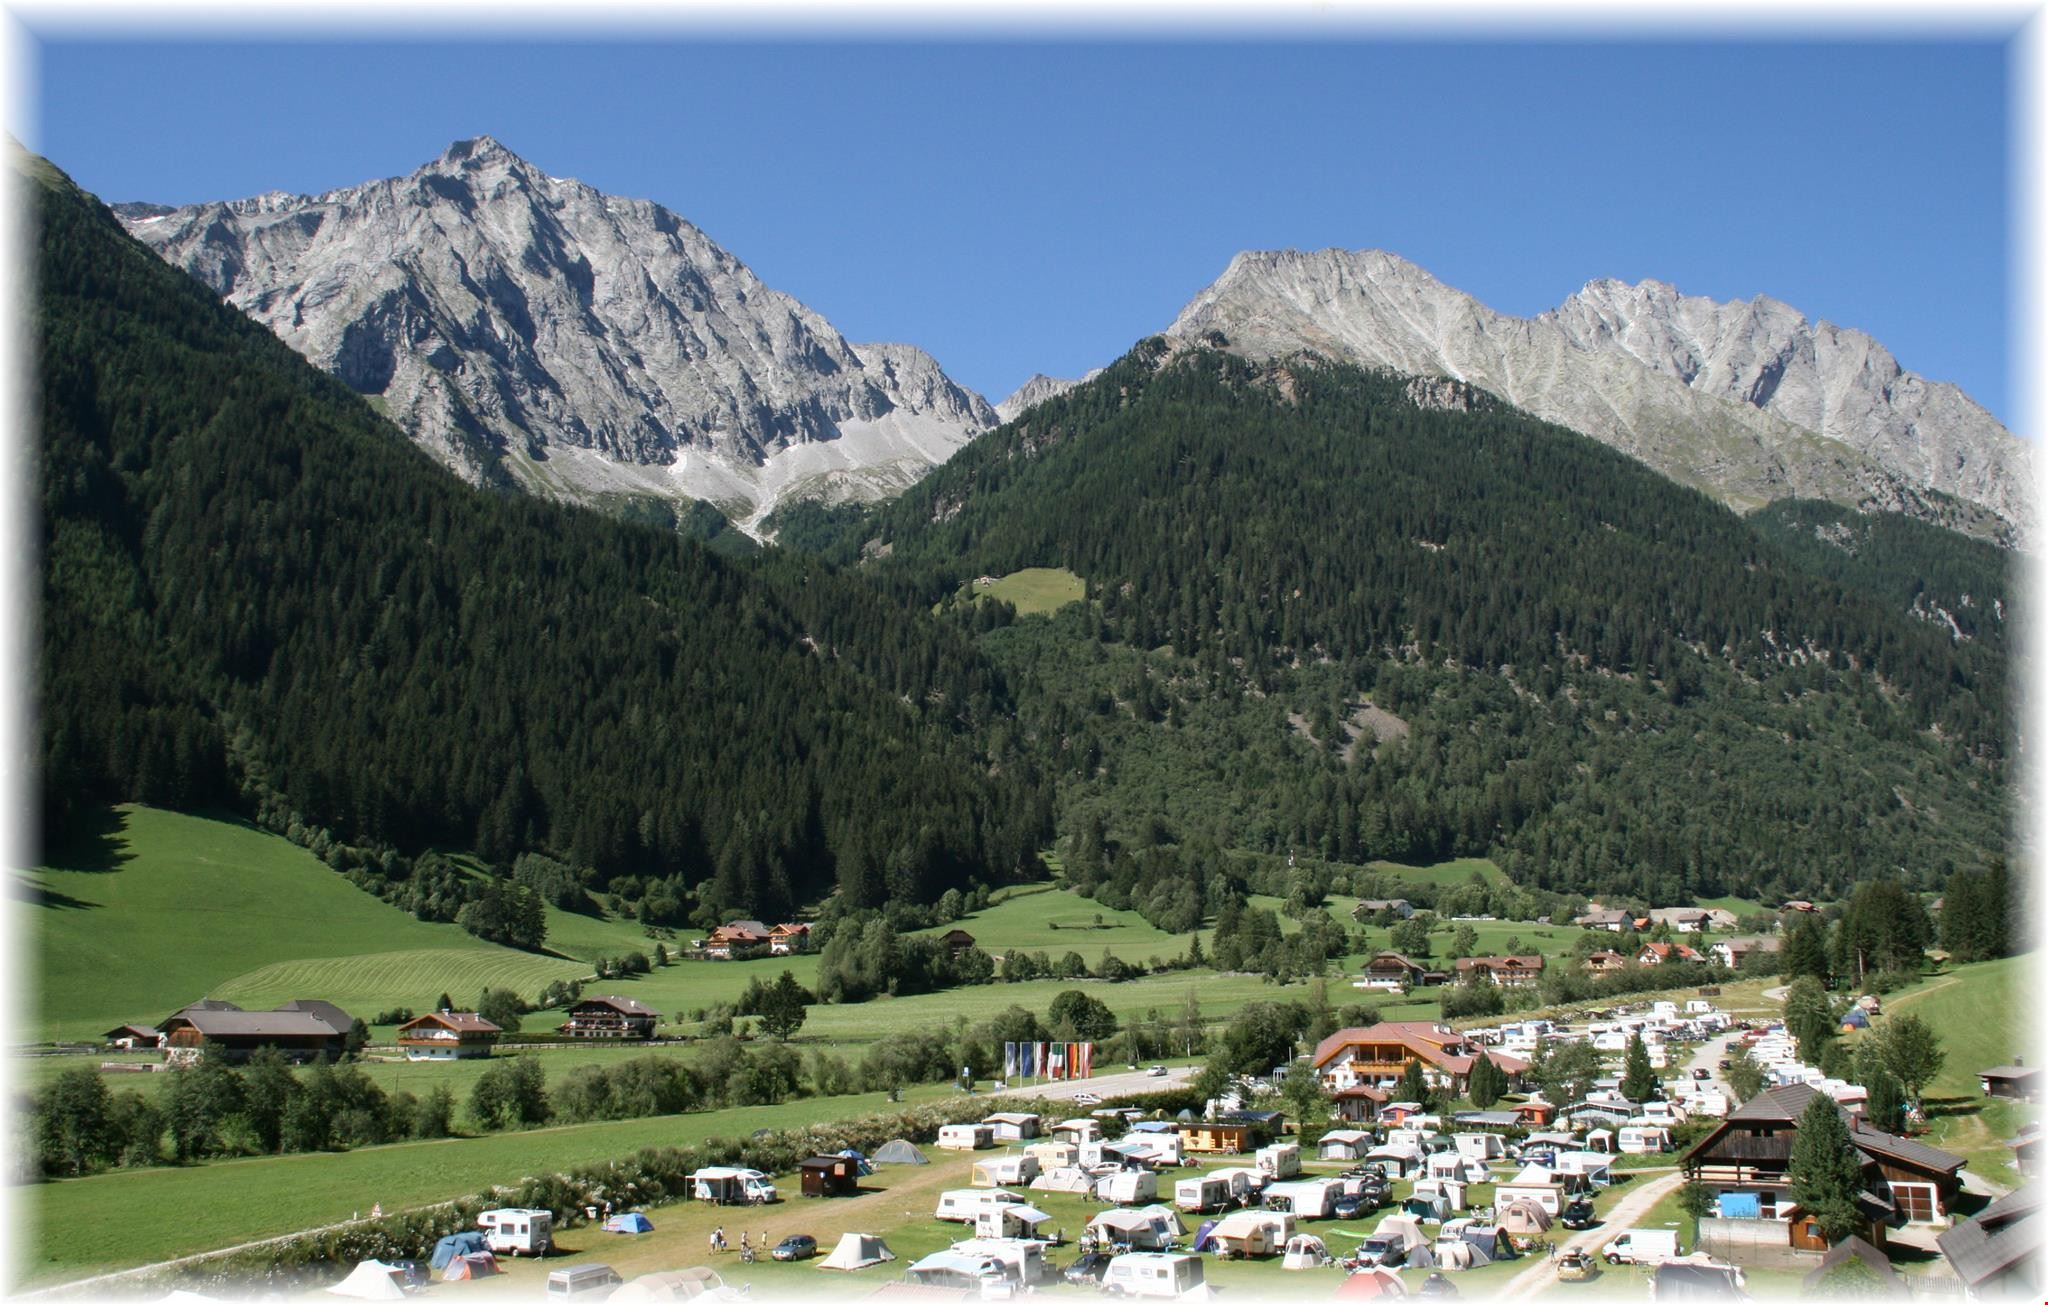 Camping in Valle Anterselva in Alto Adige